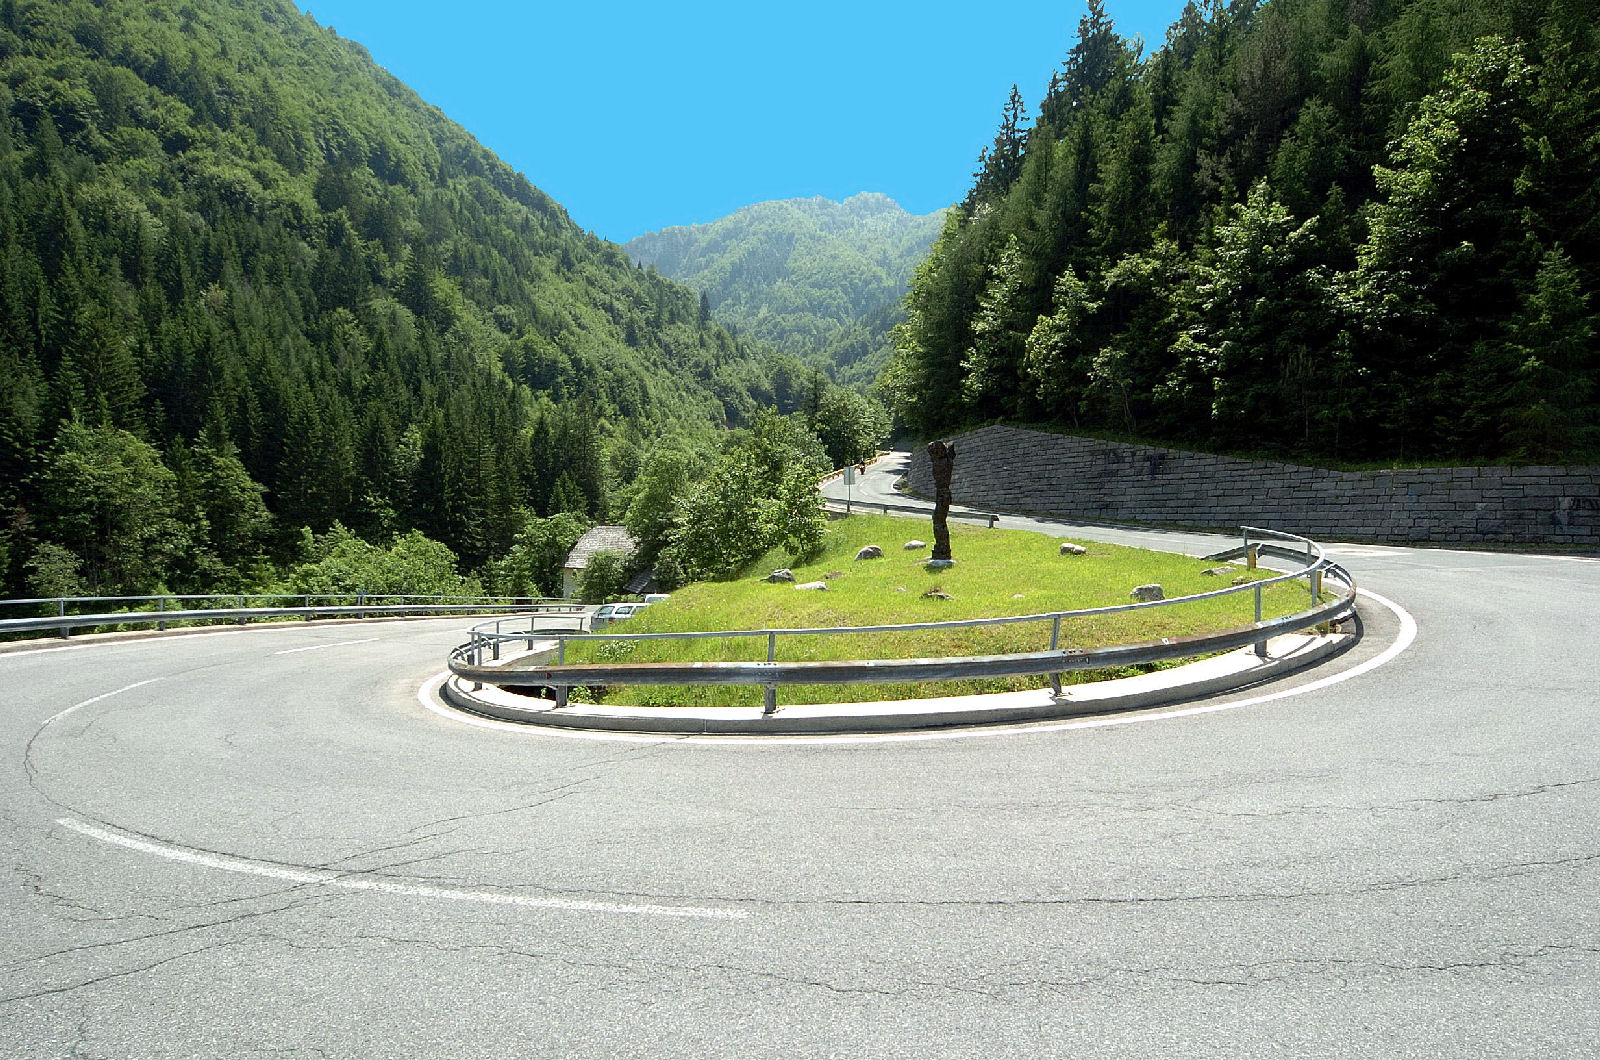 Hairpin turn on Loibl Pass road